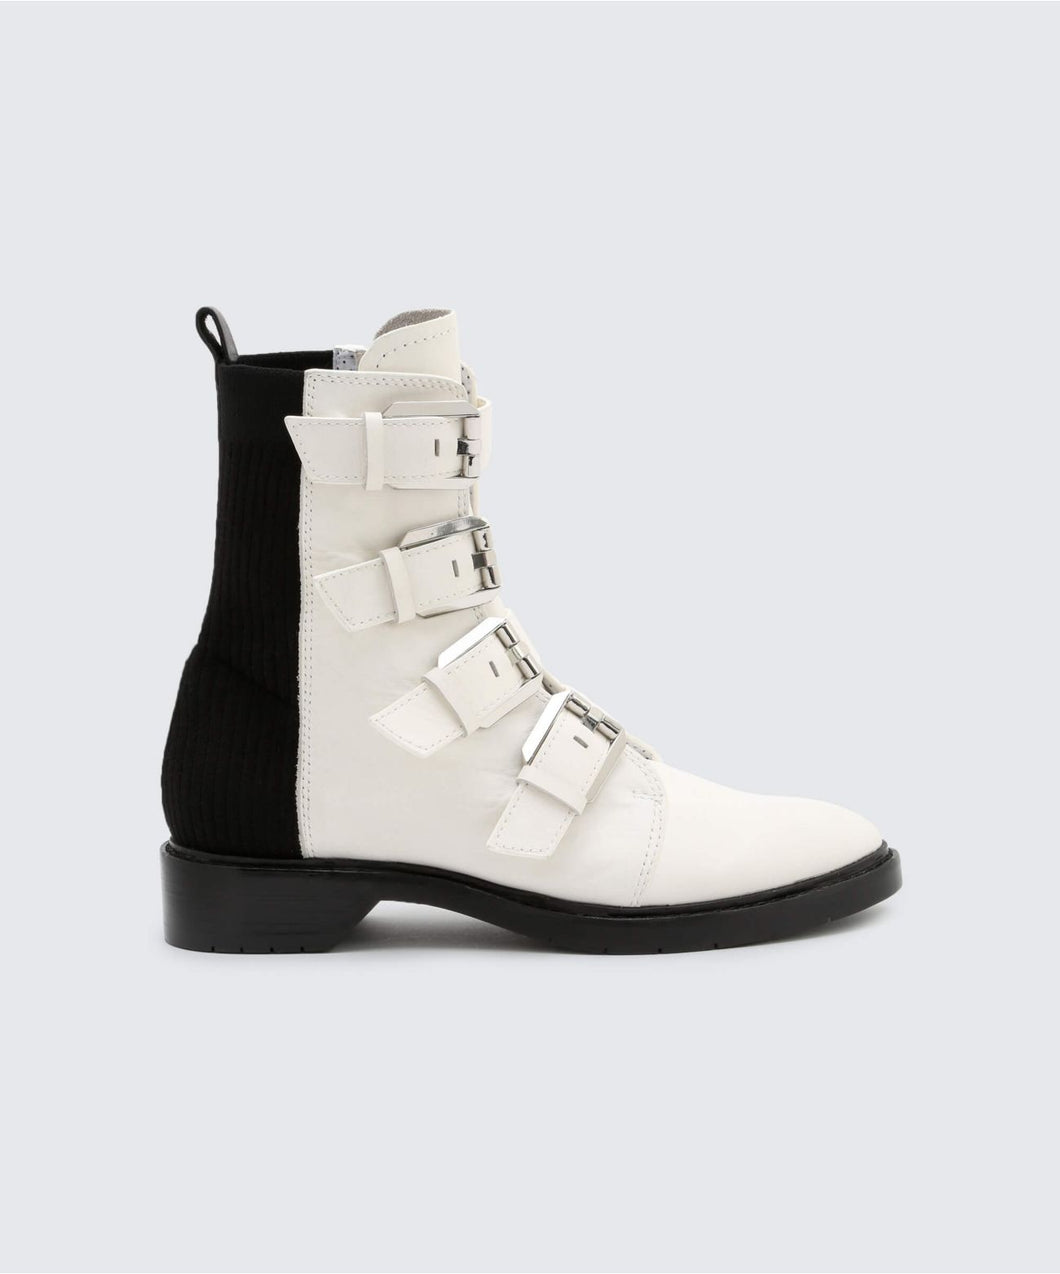 GAVEN BOOTIES IN OFF WHITE -   Dolce Vita